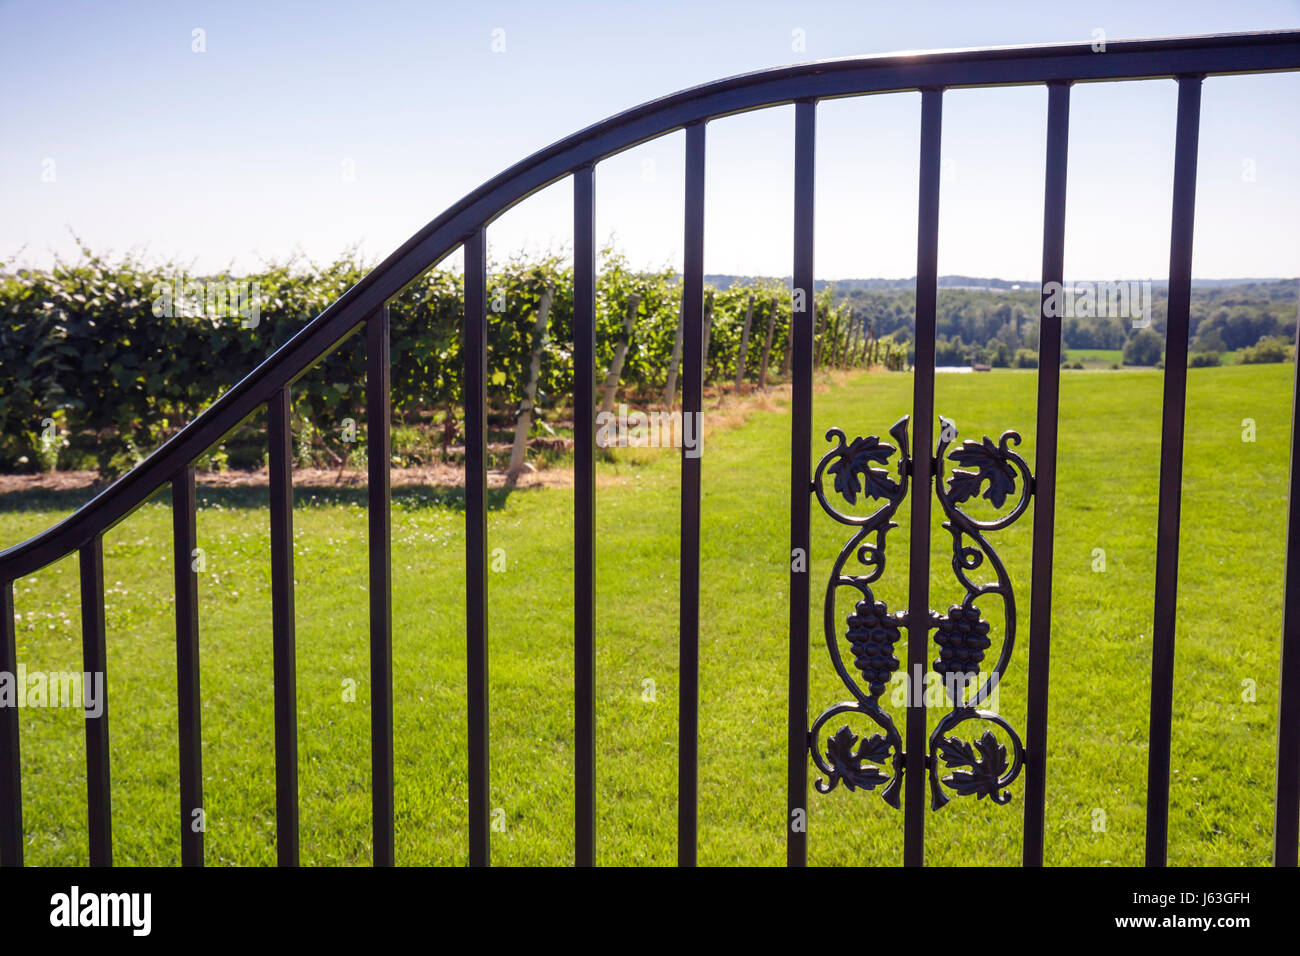 Michigan Coloma Karma Vista Vineyards and Winery grapes farm agriculture estate bottled wine viticulture iron gate - Stock Image